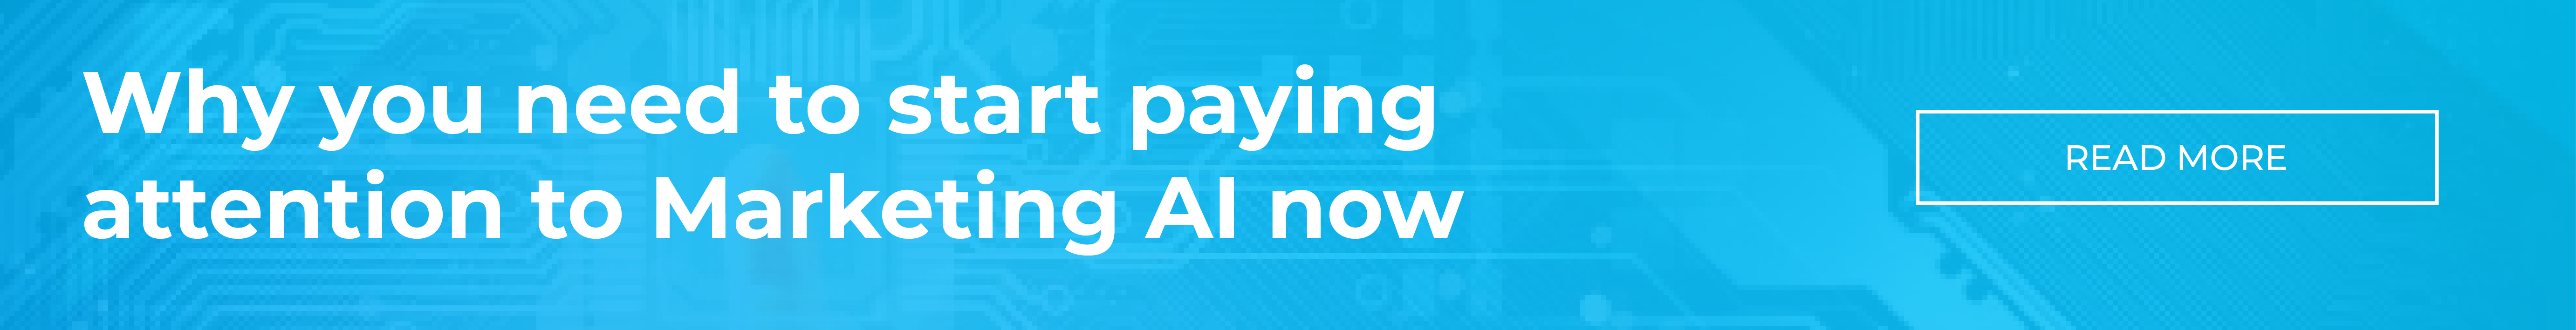 Why you need to start paying attention to marketing AI now